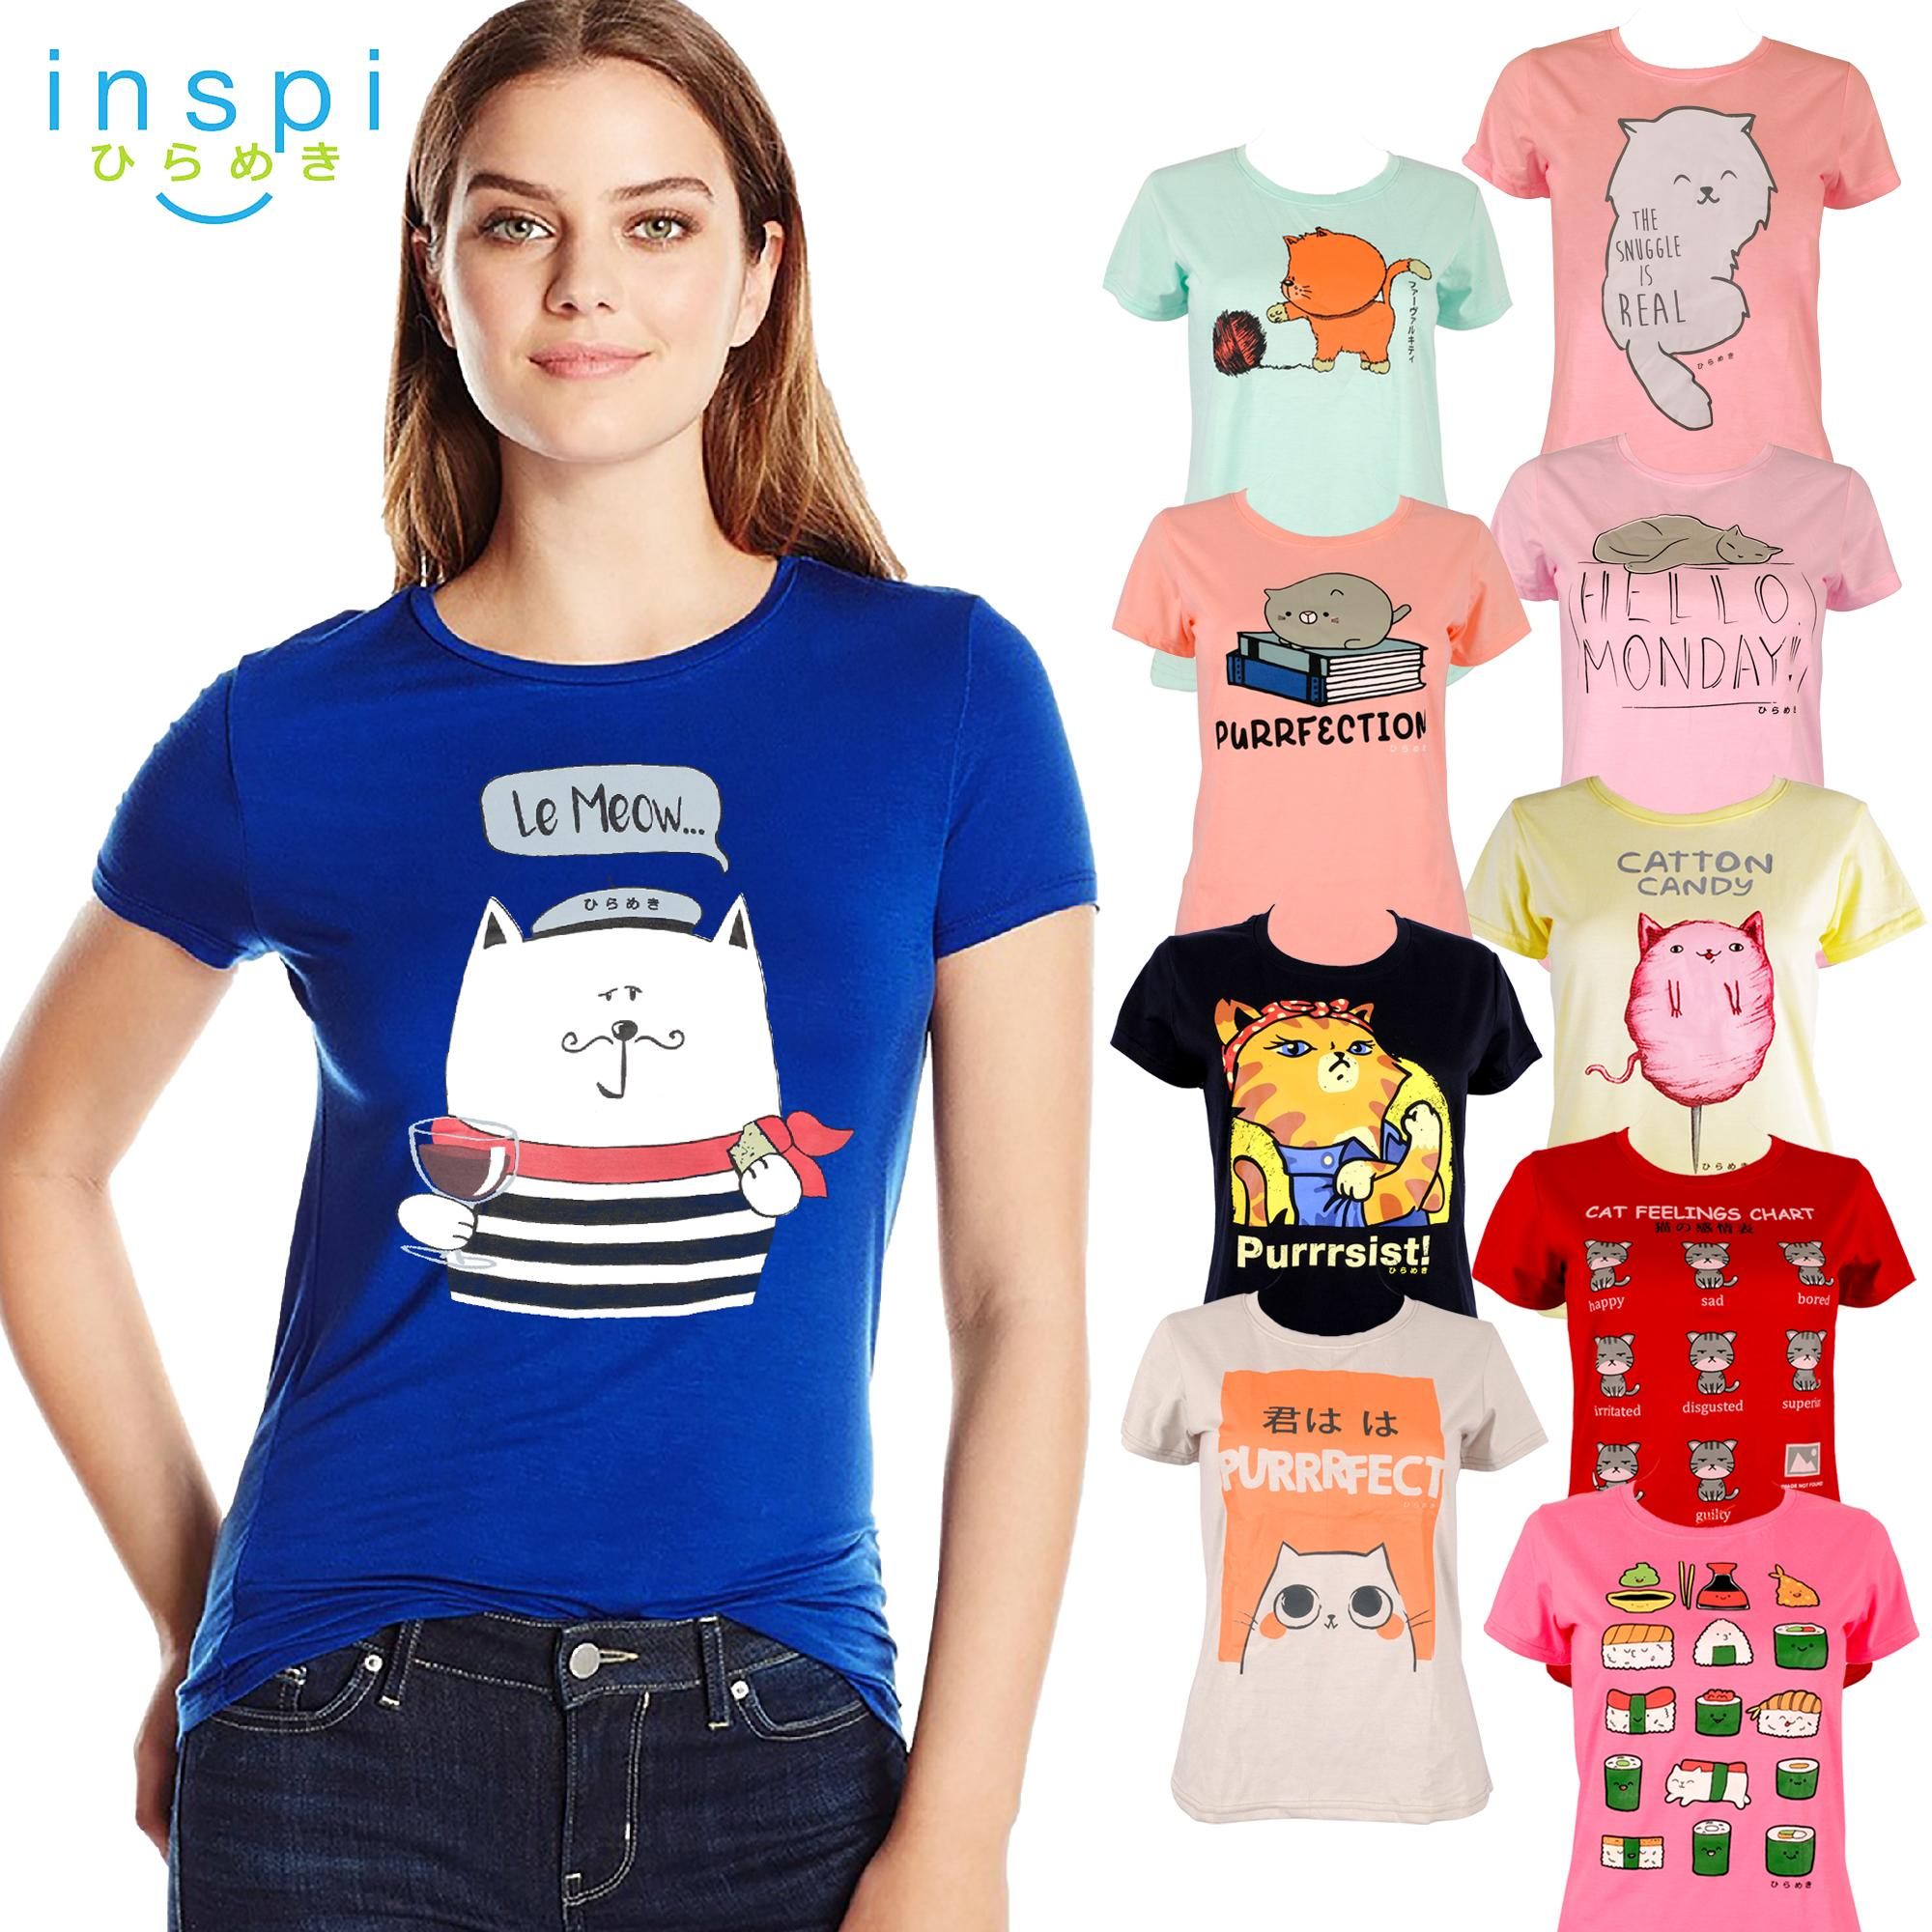 2e7739d916acb5 INSPI Tees Ladies Neko Collection tshirt printed graphic tee Ladies t shirt  shirts women tshirts for